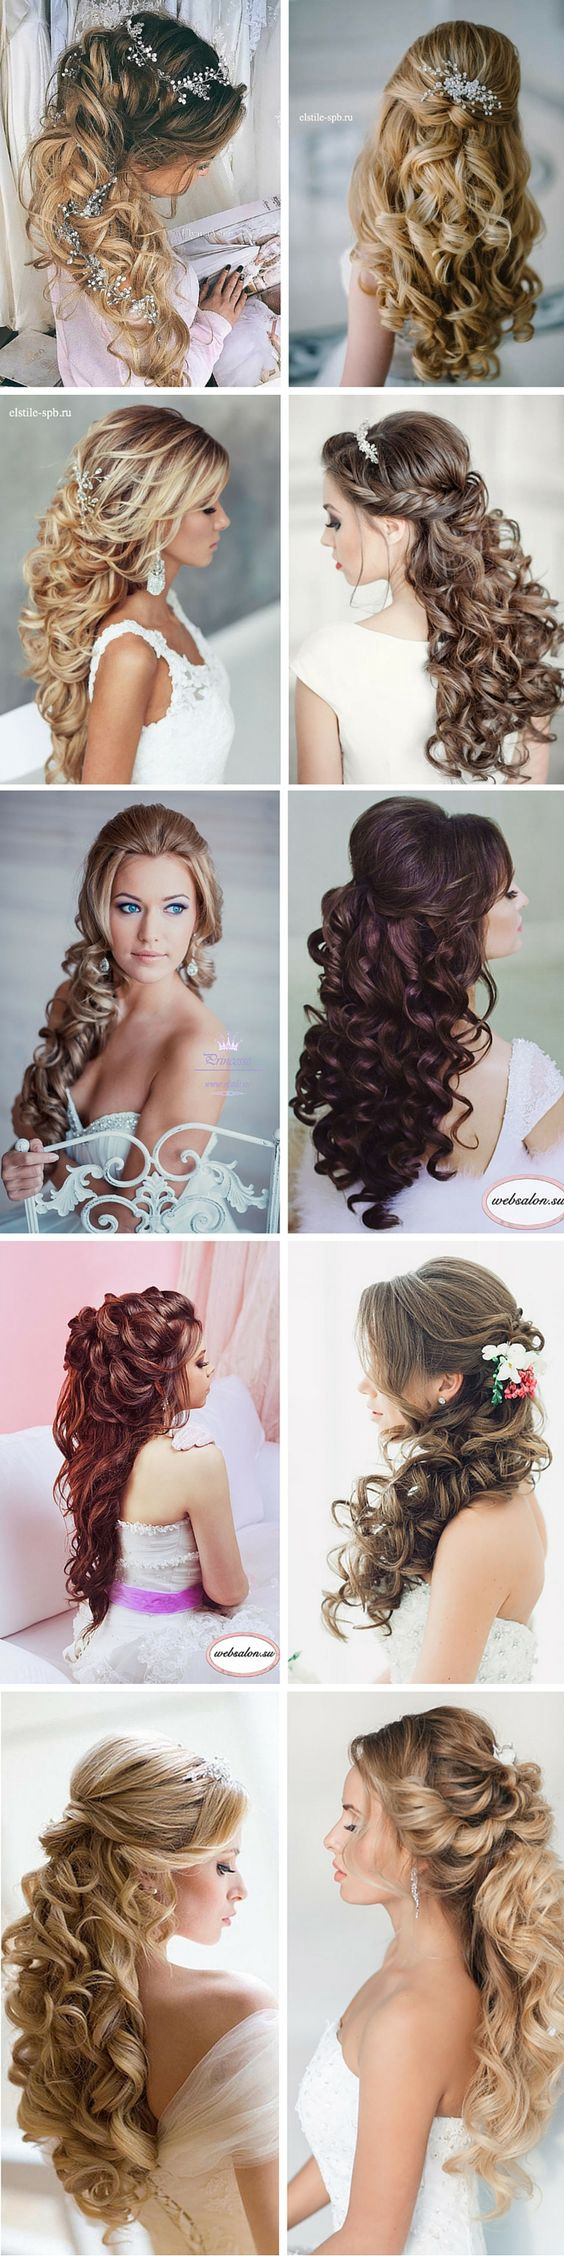 Famous Half Up Curls Hairstyles For Wedding Inside 100+ Romantic Long Wedding Hairstyles 2019 – Curls, Half Up, Updos (View 7 of 20)